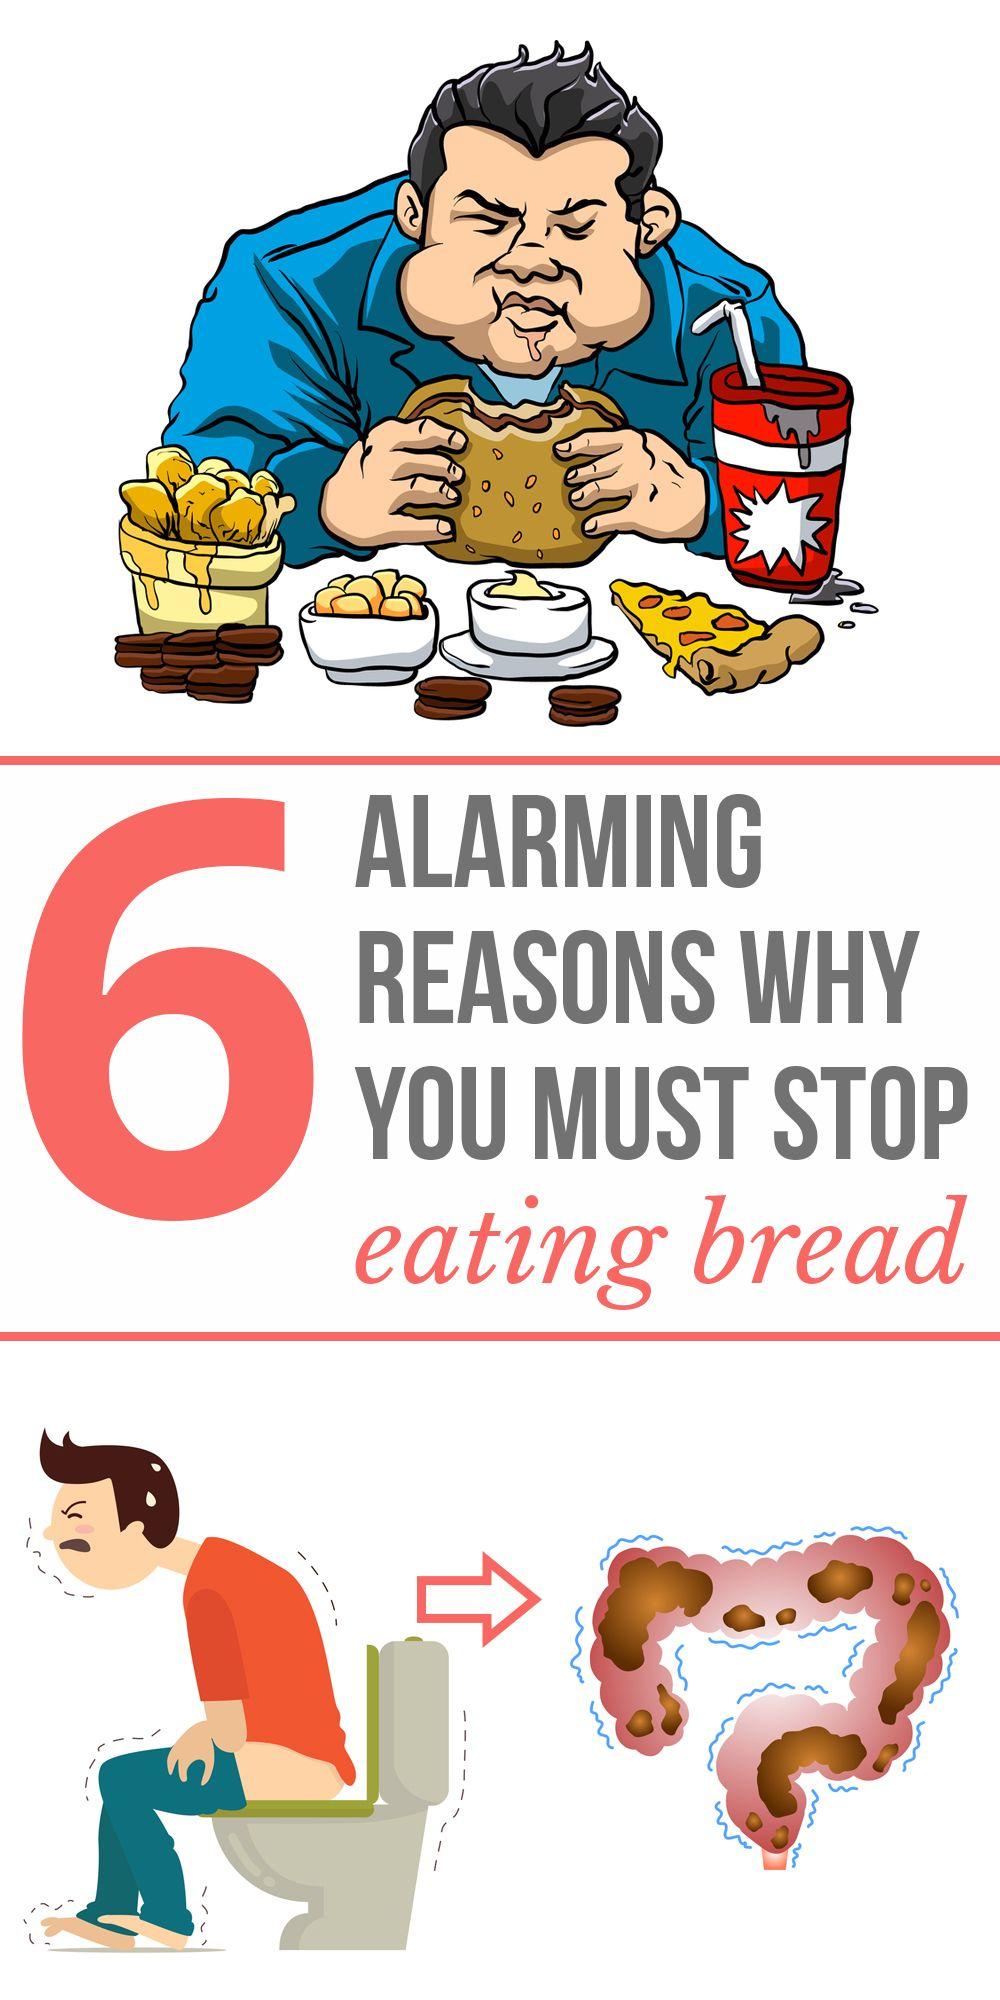 6 Alarming Reasons Why You Should Stop Eating Bread Have Fun